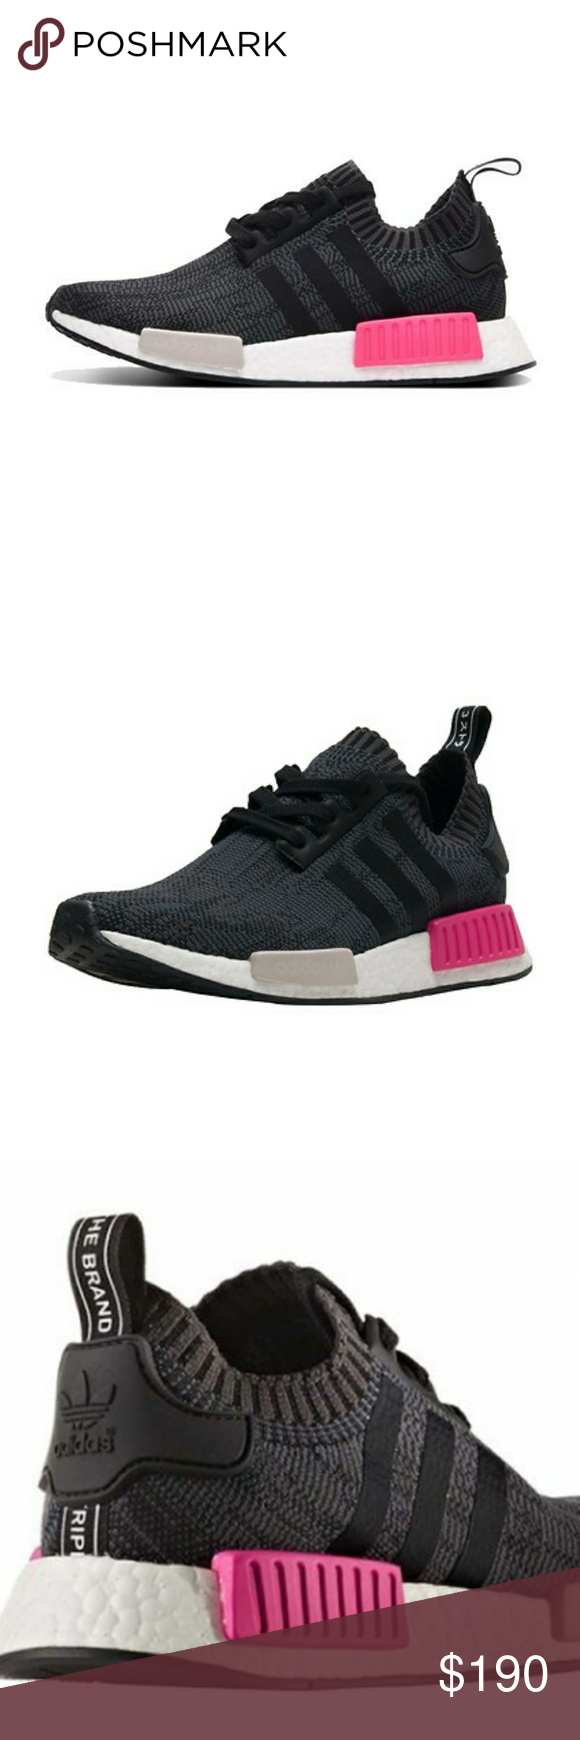 Adidas NMD R1 primeknits Brand New  mujer 's size, FIT 6 /